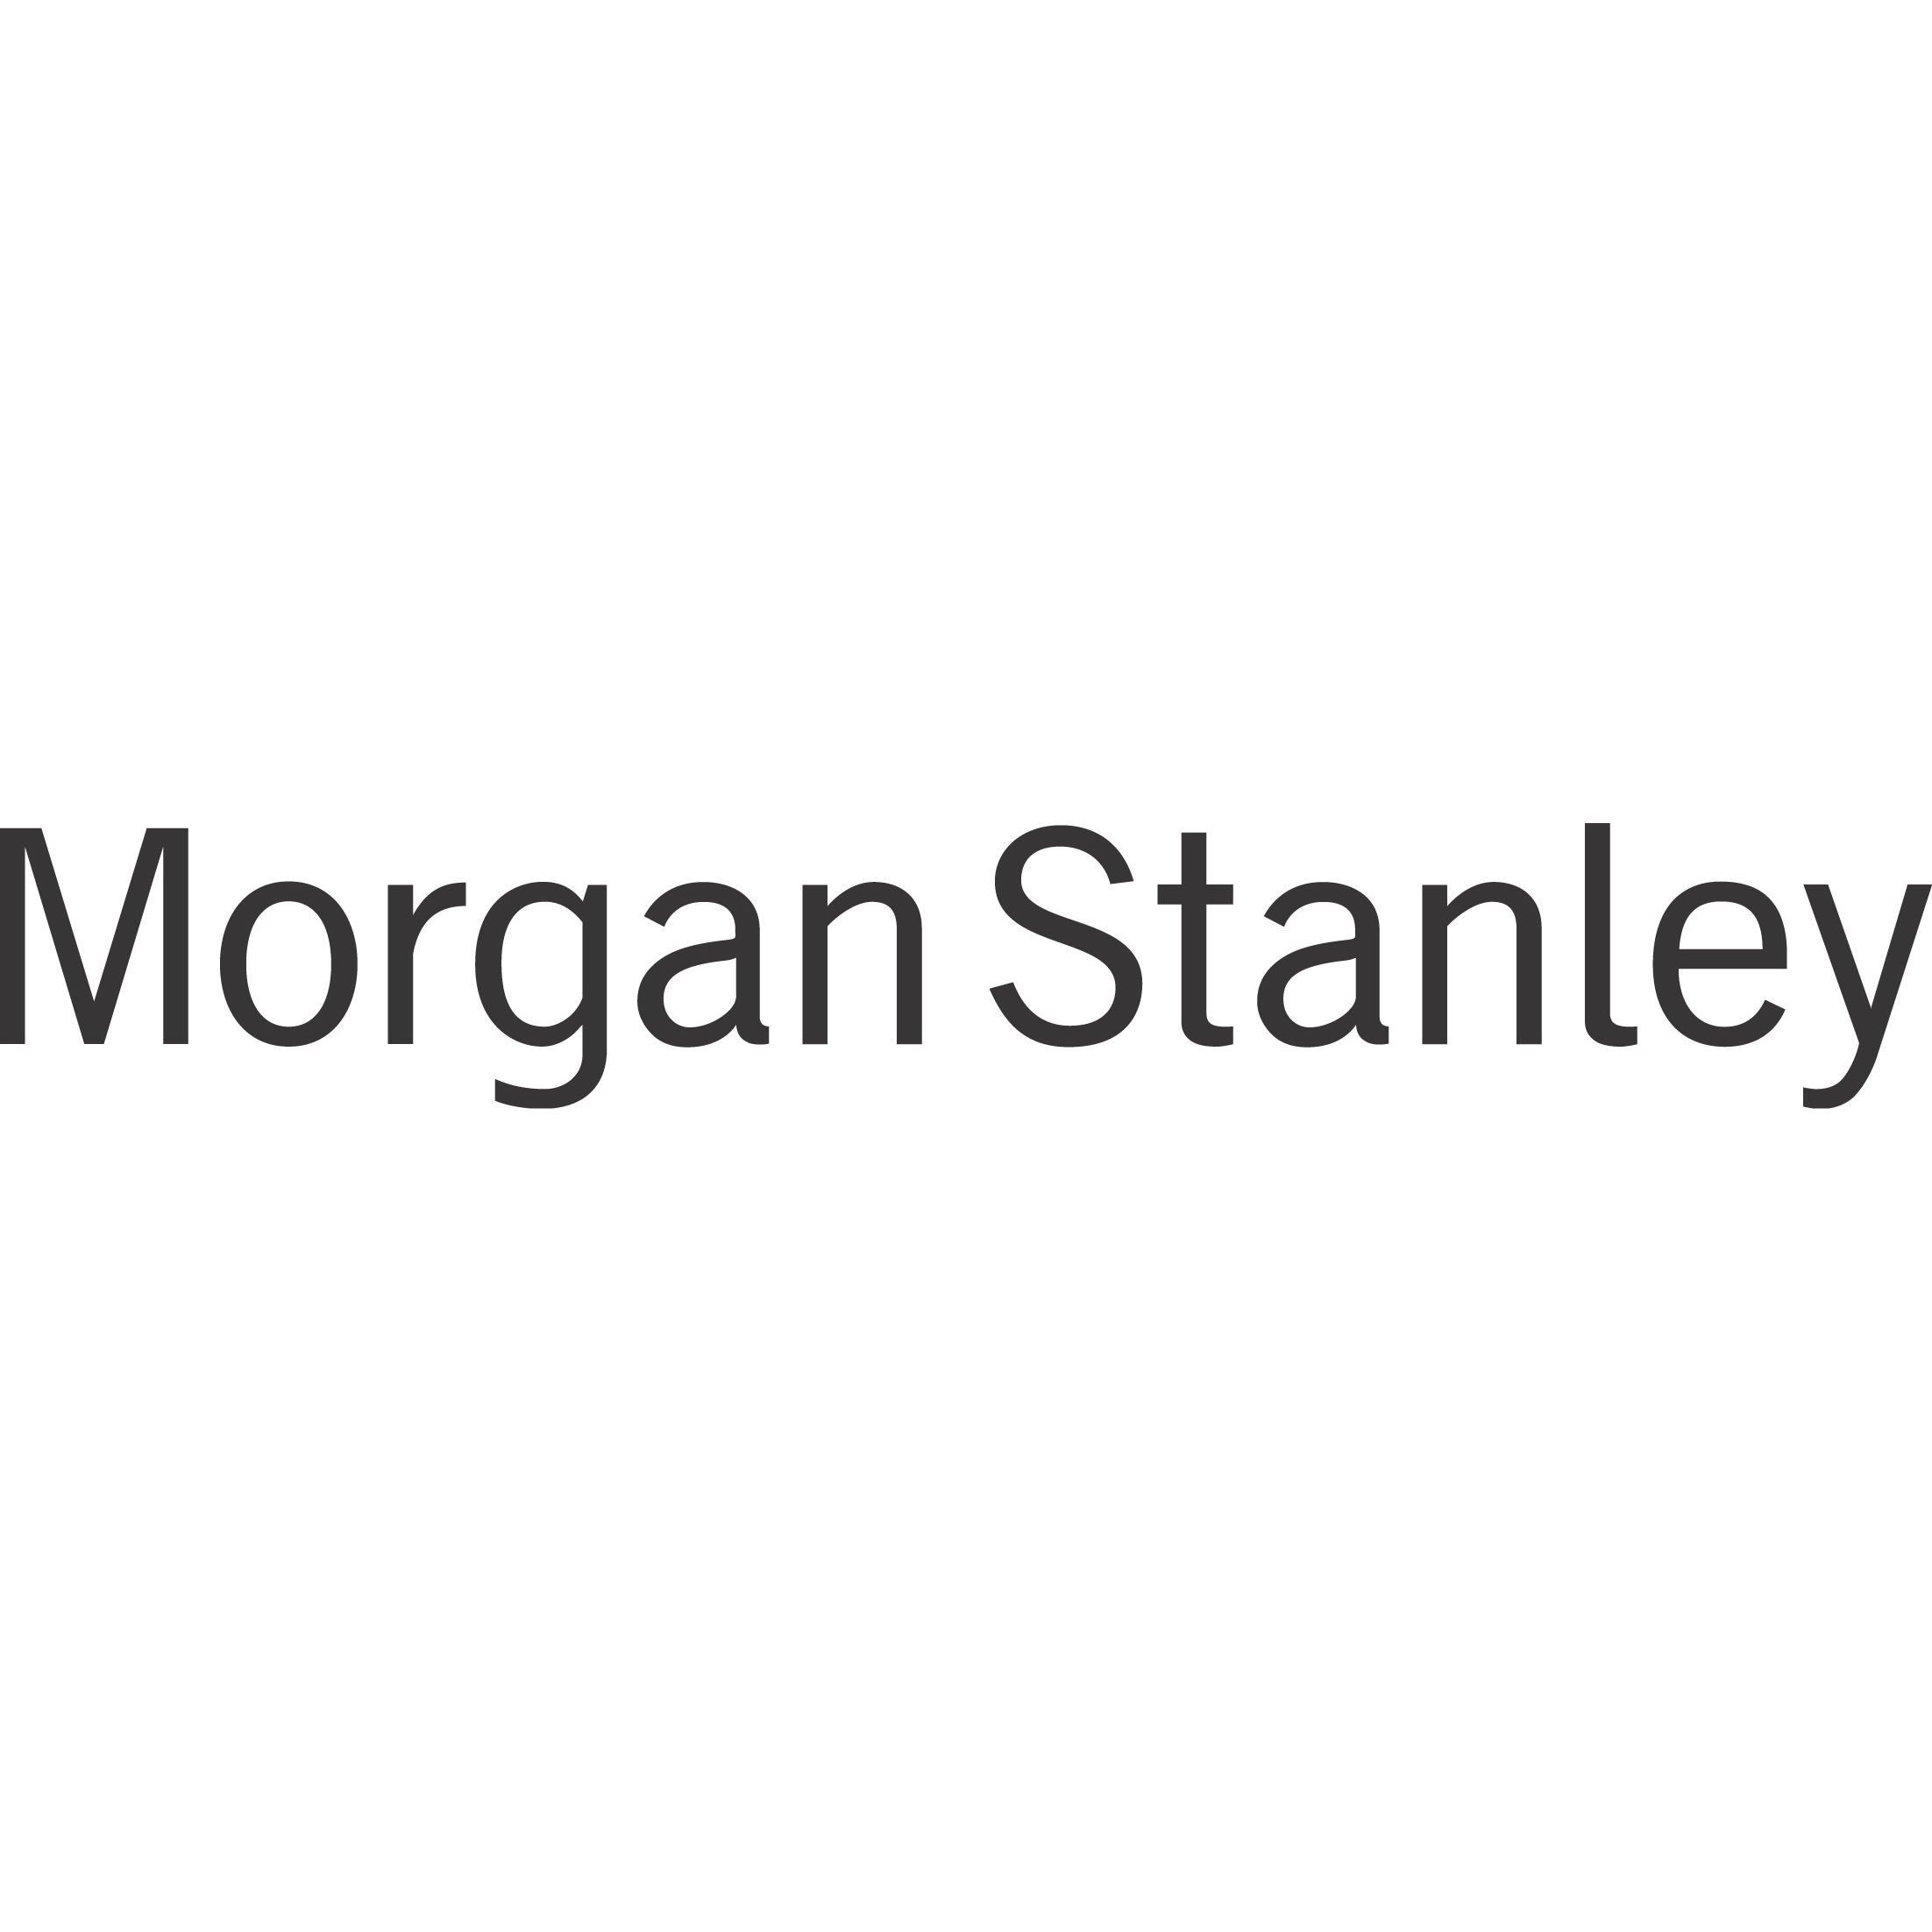 Nathan J Smith - Morgan Stanley | Financial Advisor in Fayetteville,North Carolina